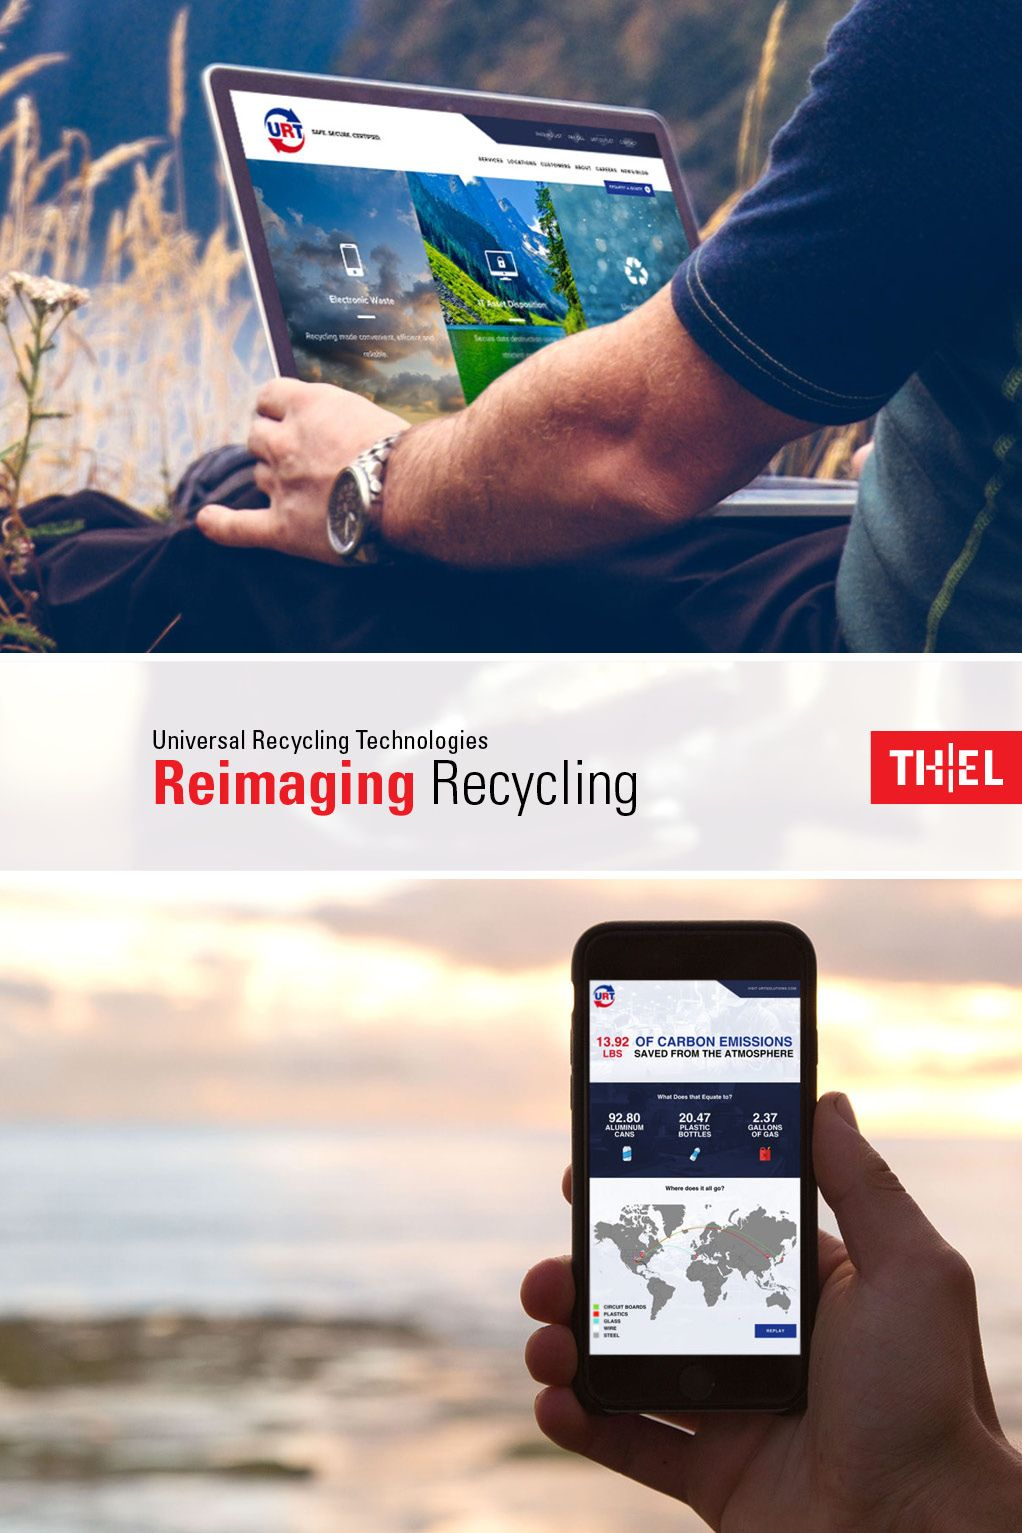 Urt Is An Industry Leading Electronics And Universal Waste Recycling Company That Operates Four World Class Recycling Facilities Recycling Universal Technology